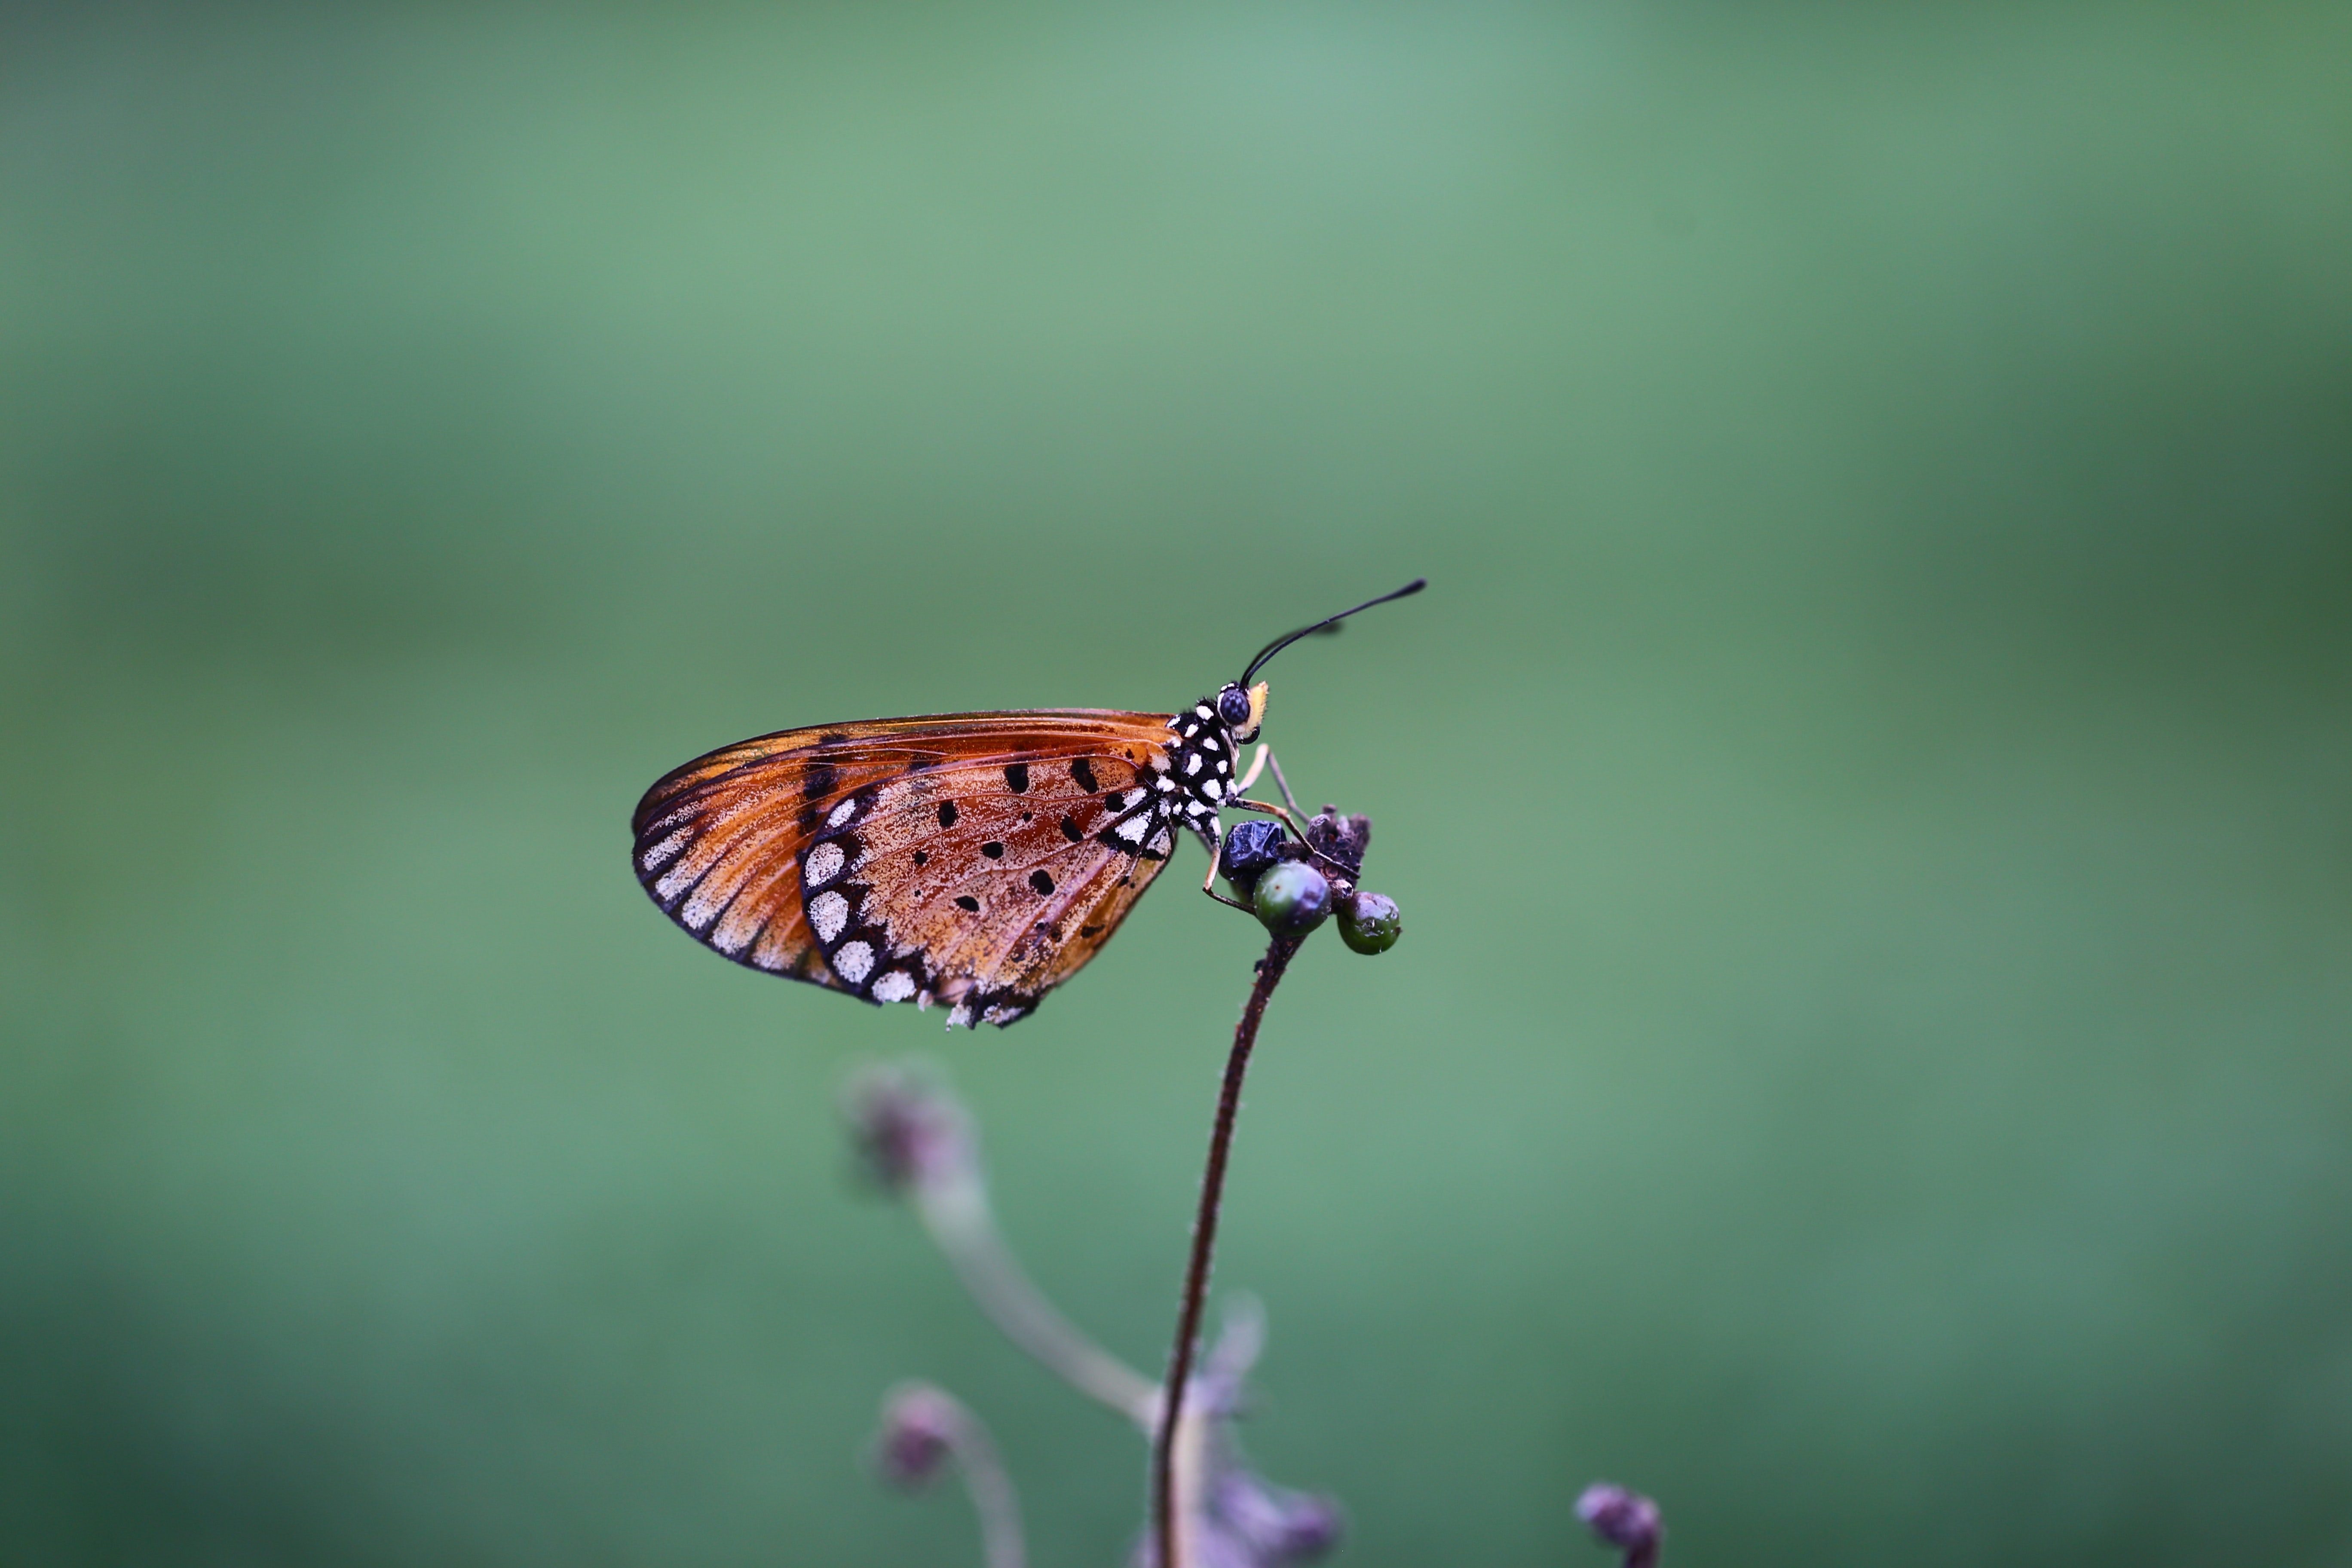 Brown and black shallow focus photography of a butterfly